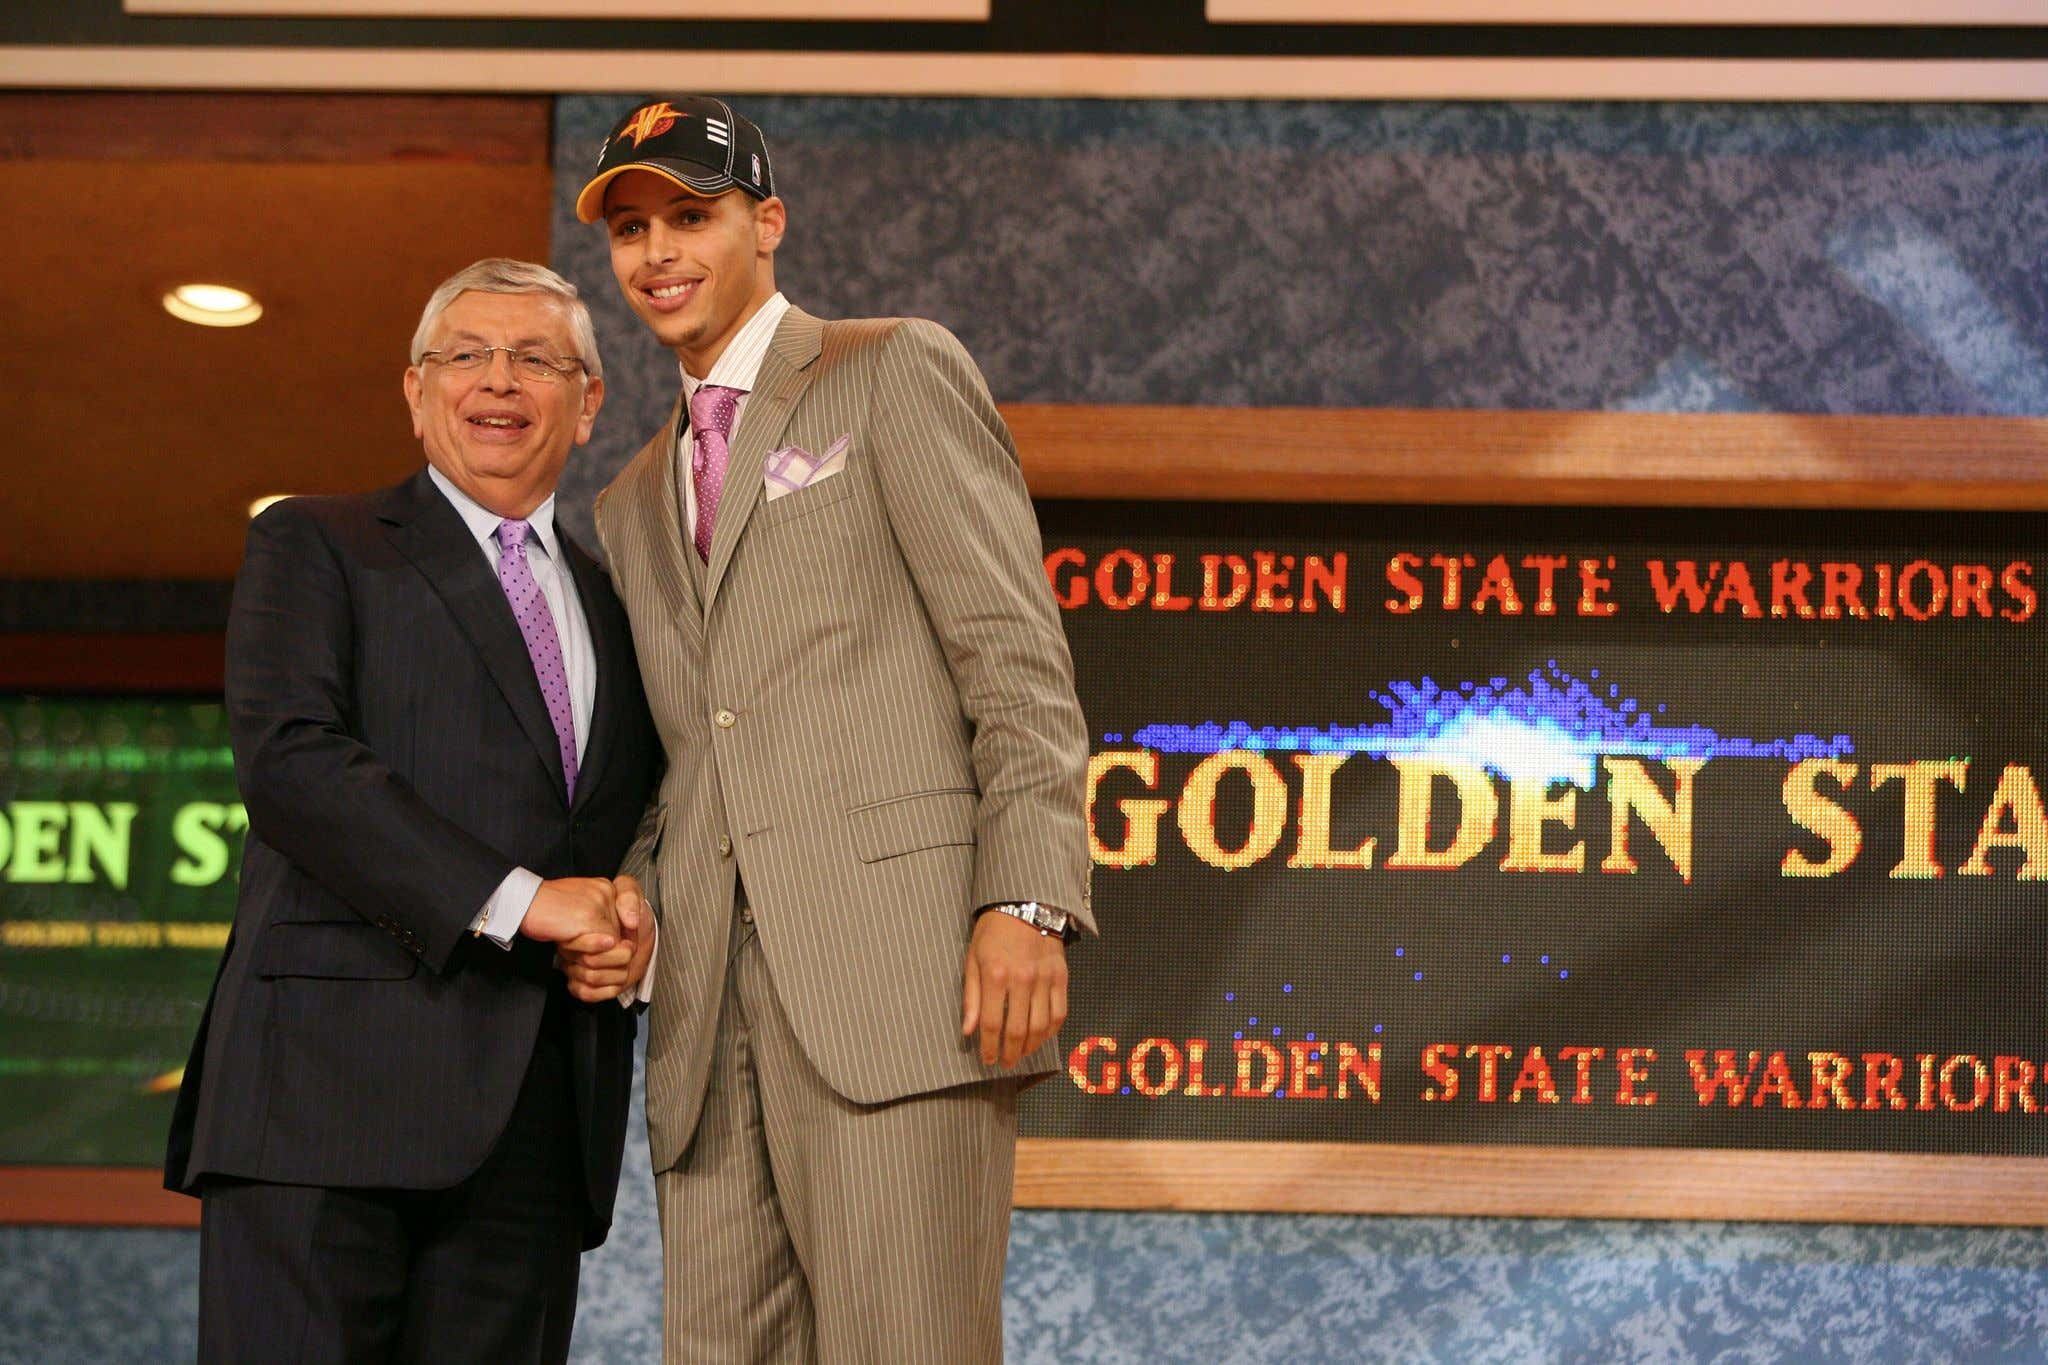 NEW YORK - JUNE 25:  Stephen Curry shakes hands with NBA Commissioner David Stern after being selected seventh by the Golden State Warriors during the 2009 NBA Draft on June 25, 2009 at the WaMu Theatre at Madison Square Garden in New York City. NOTE TO USER: User expressly acknowledges and agrees that, by downloading and/or using this Photograph, user is consenting to the terms and conditions of the Getty Images License Agreement. Mandatory Copyright Notice: Copyright 2009 NBAE (Photo by Nathaniel S. Butler/NBAE via Getty Images)